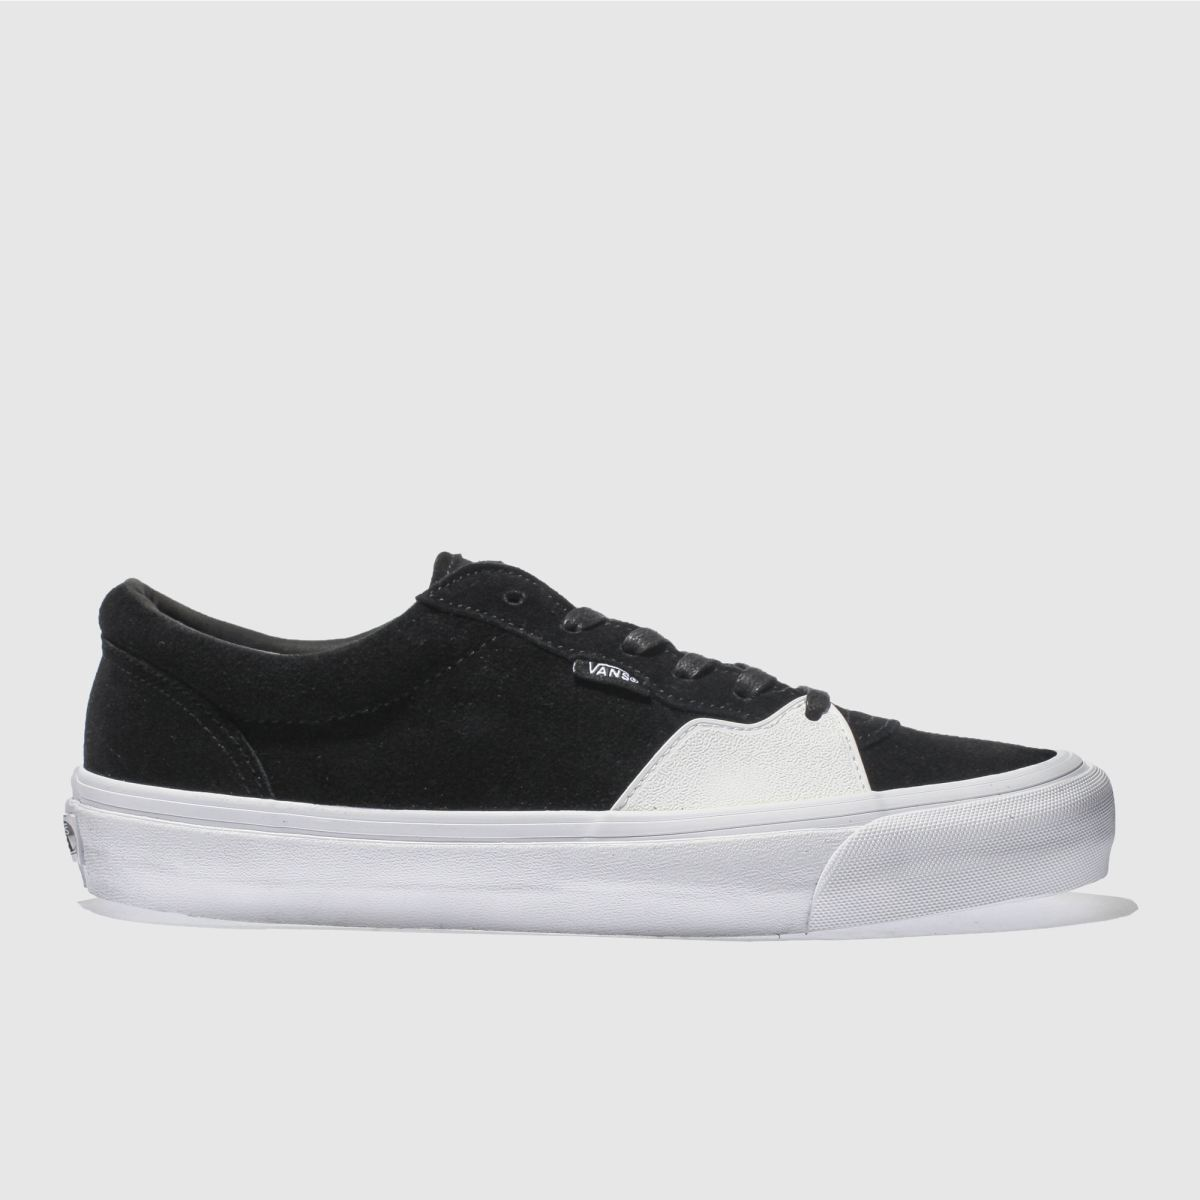 Vans Black & White Style 205 Trainers